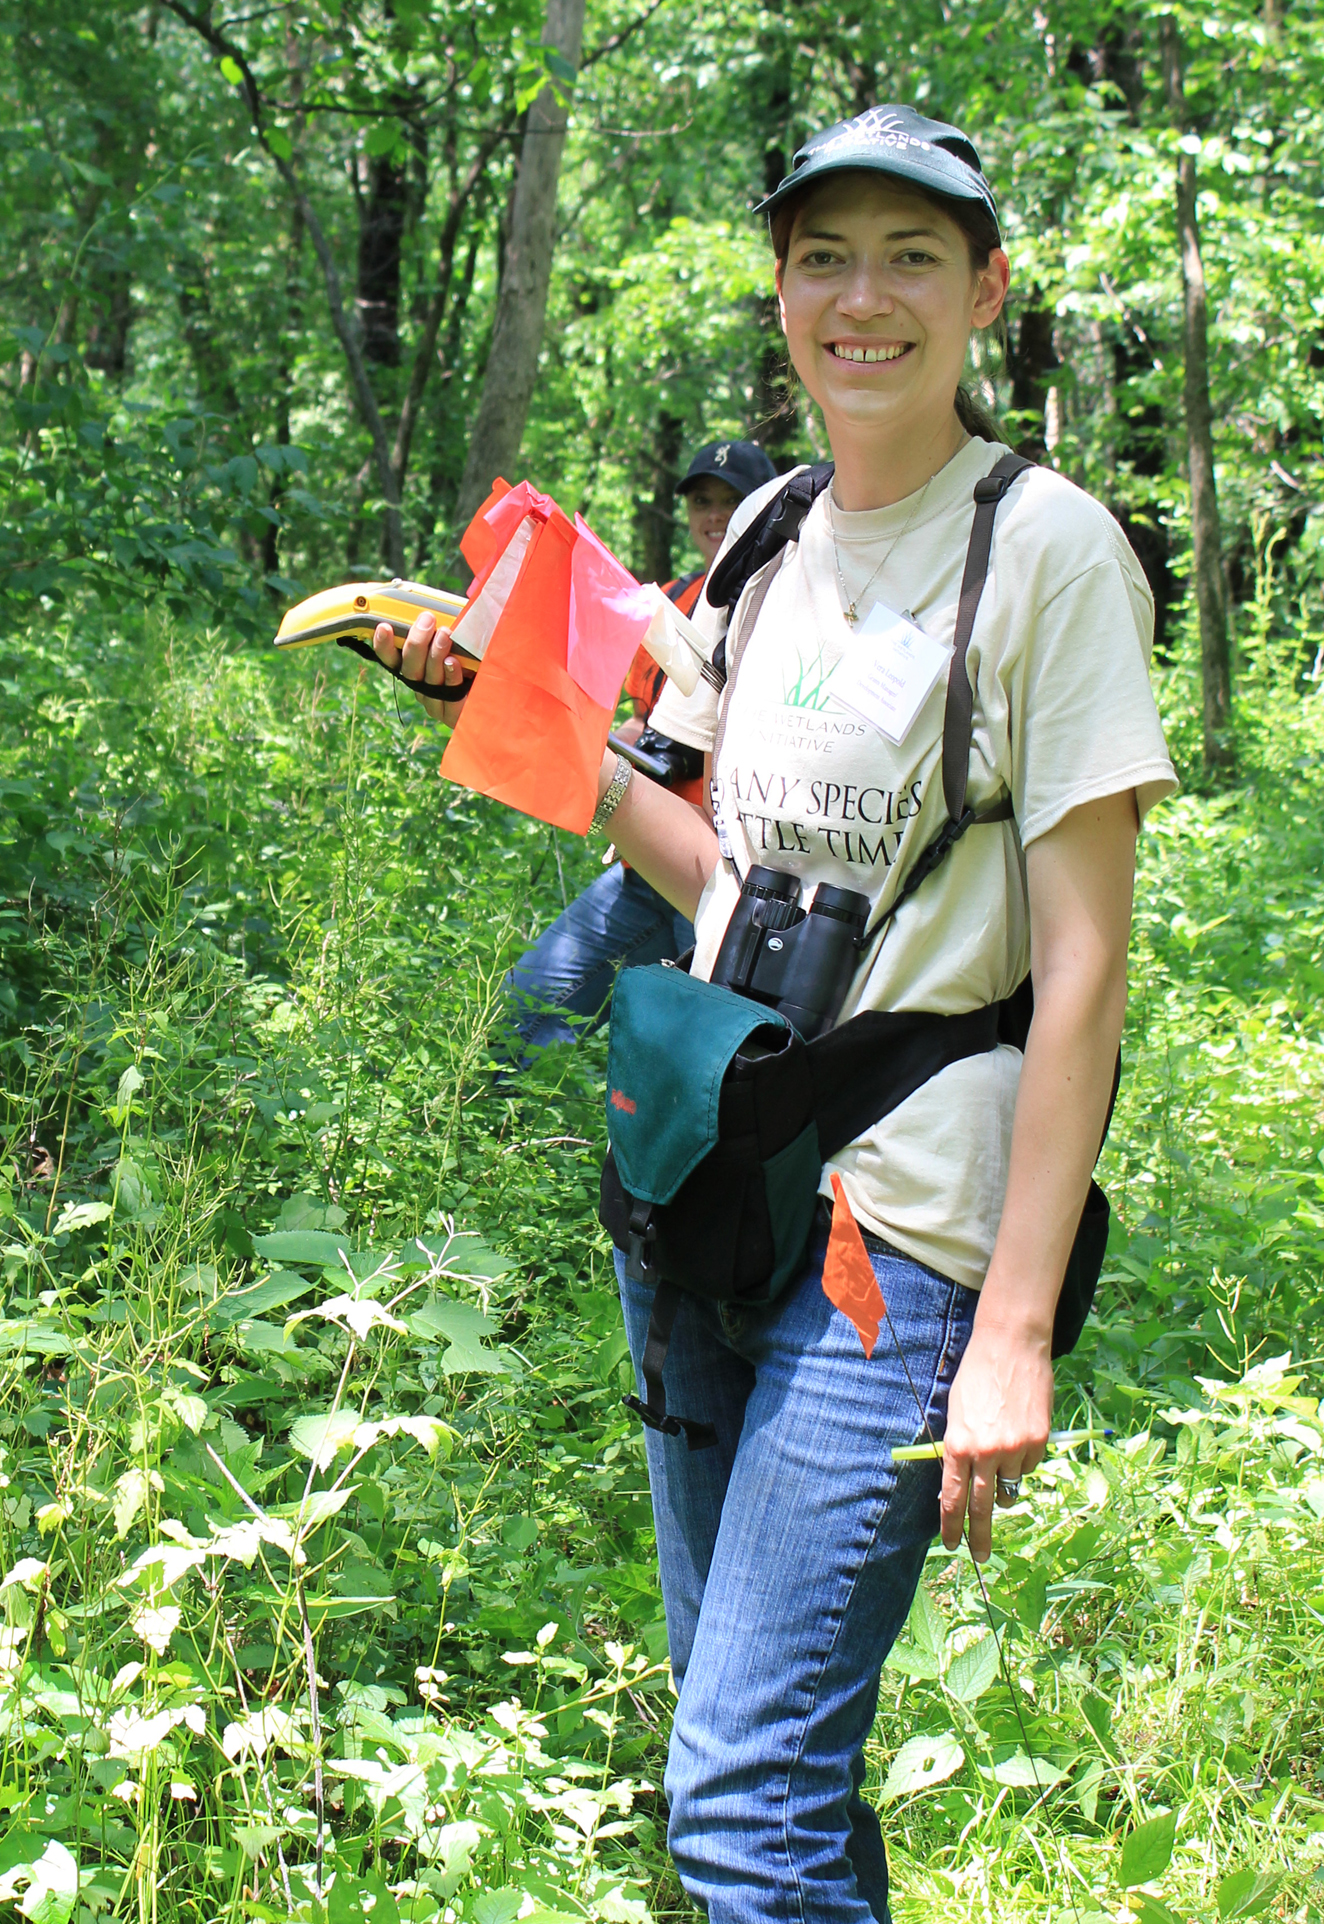 TWI Grants Manager Vera Leopold geared up for surveying at Hickory Hollow in 2015.